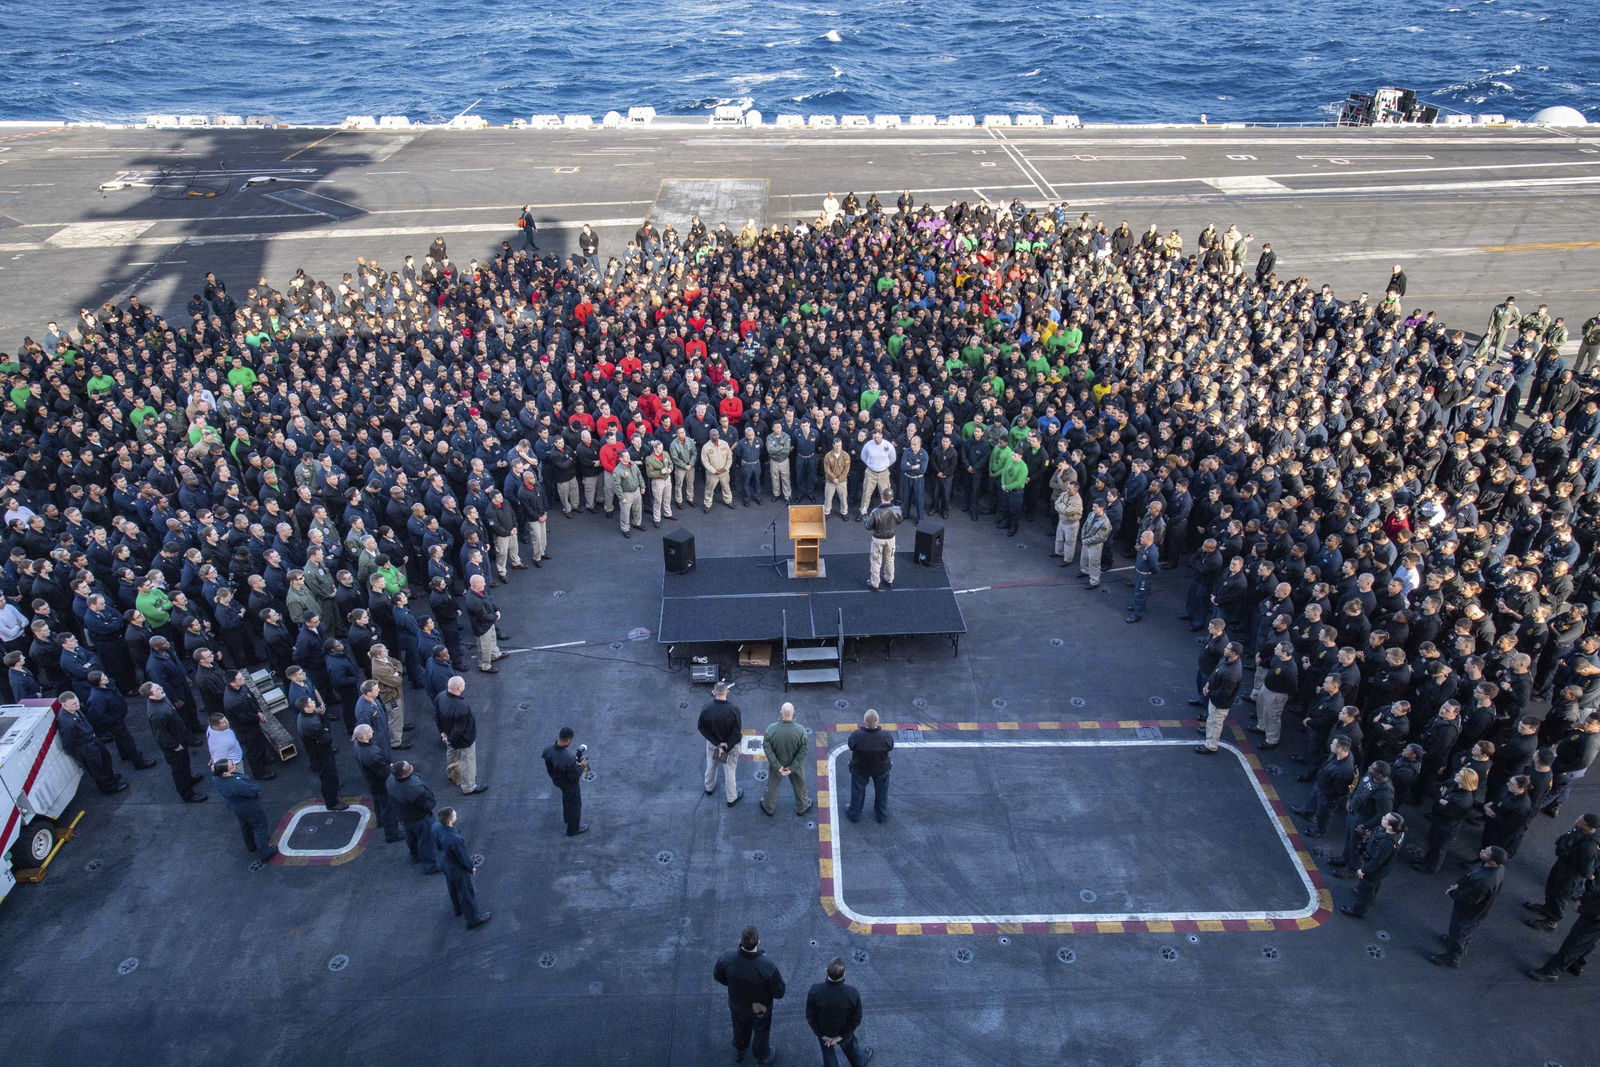 FILE - In this Dec. 15, 2019, file photo, U.S.Navy Capt. Brett Crozier, commanding officer of the aircraft carrier USS Theodore Roosevelt (CVN 71), addresses the crew during an all hands call on the ship's flight deck while conducting routine training in the Eastern Pacific Ocean. (U.S. Navy Photo by Mass Communication Specialist Seaman Kaylianna Genier via AP)